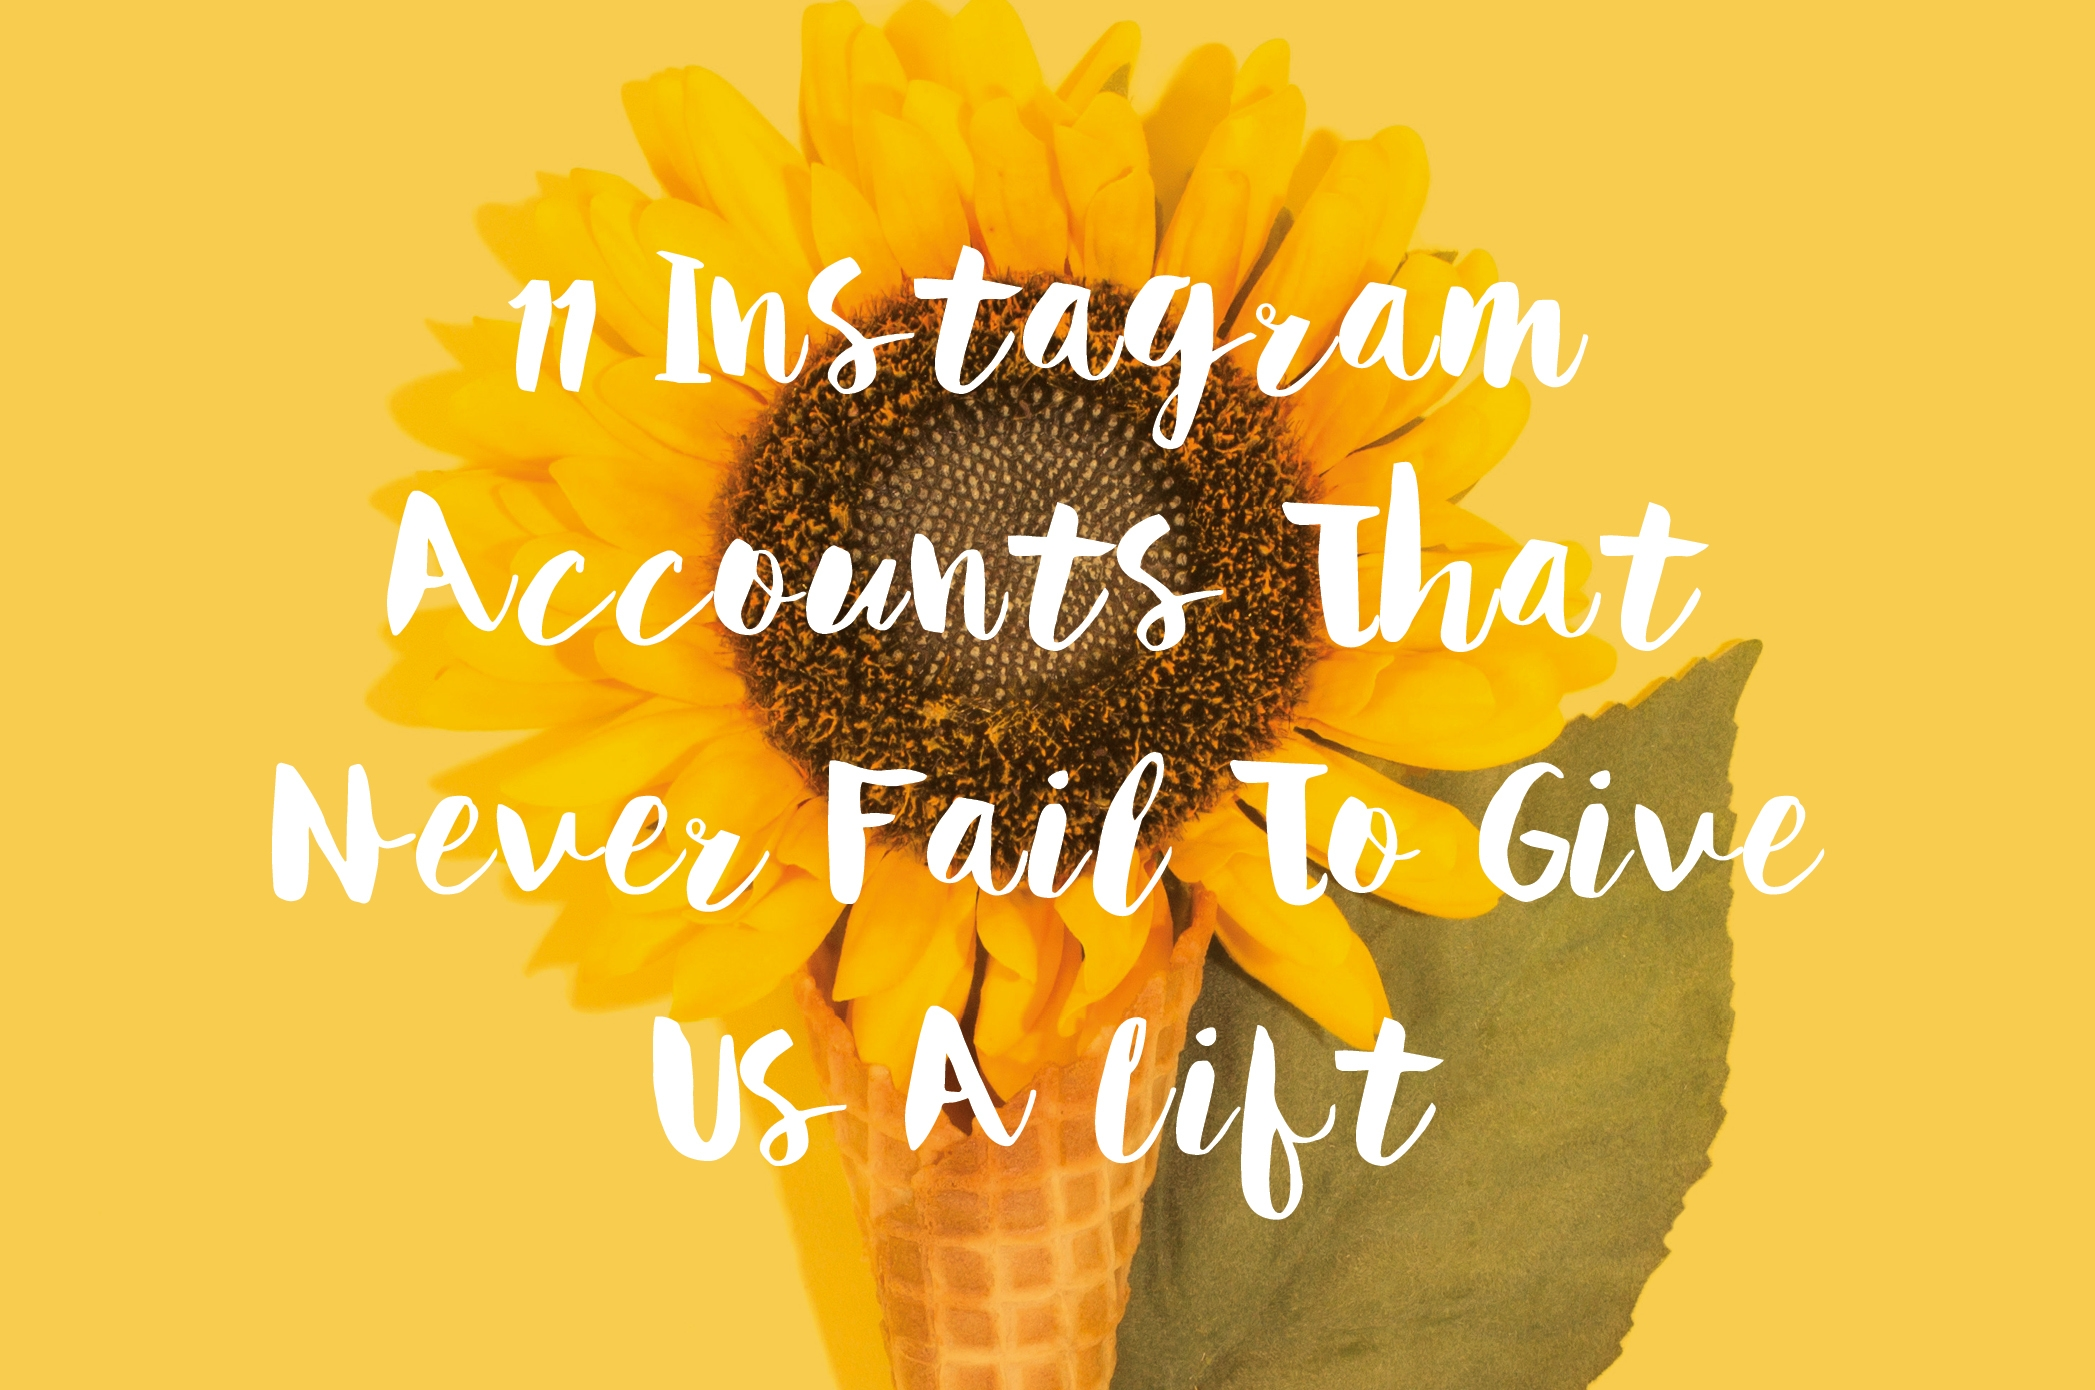 11 Instagram Accounts That Never Fail To Give Us A Lift